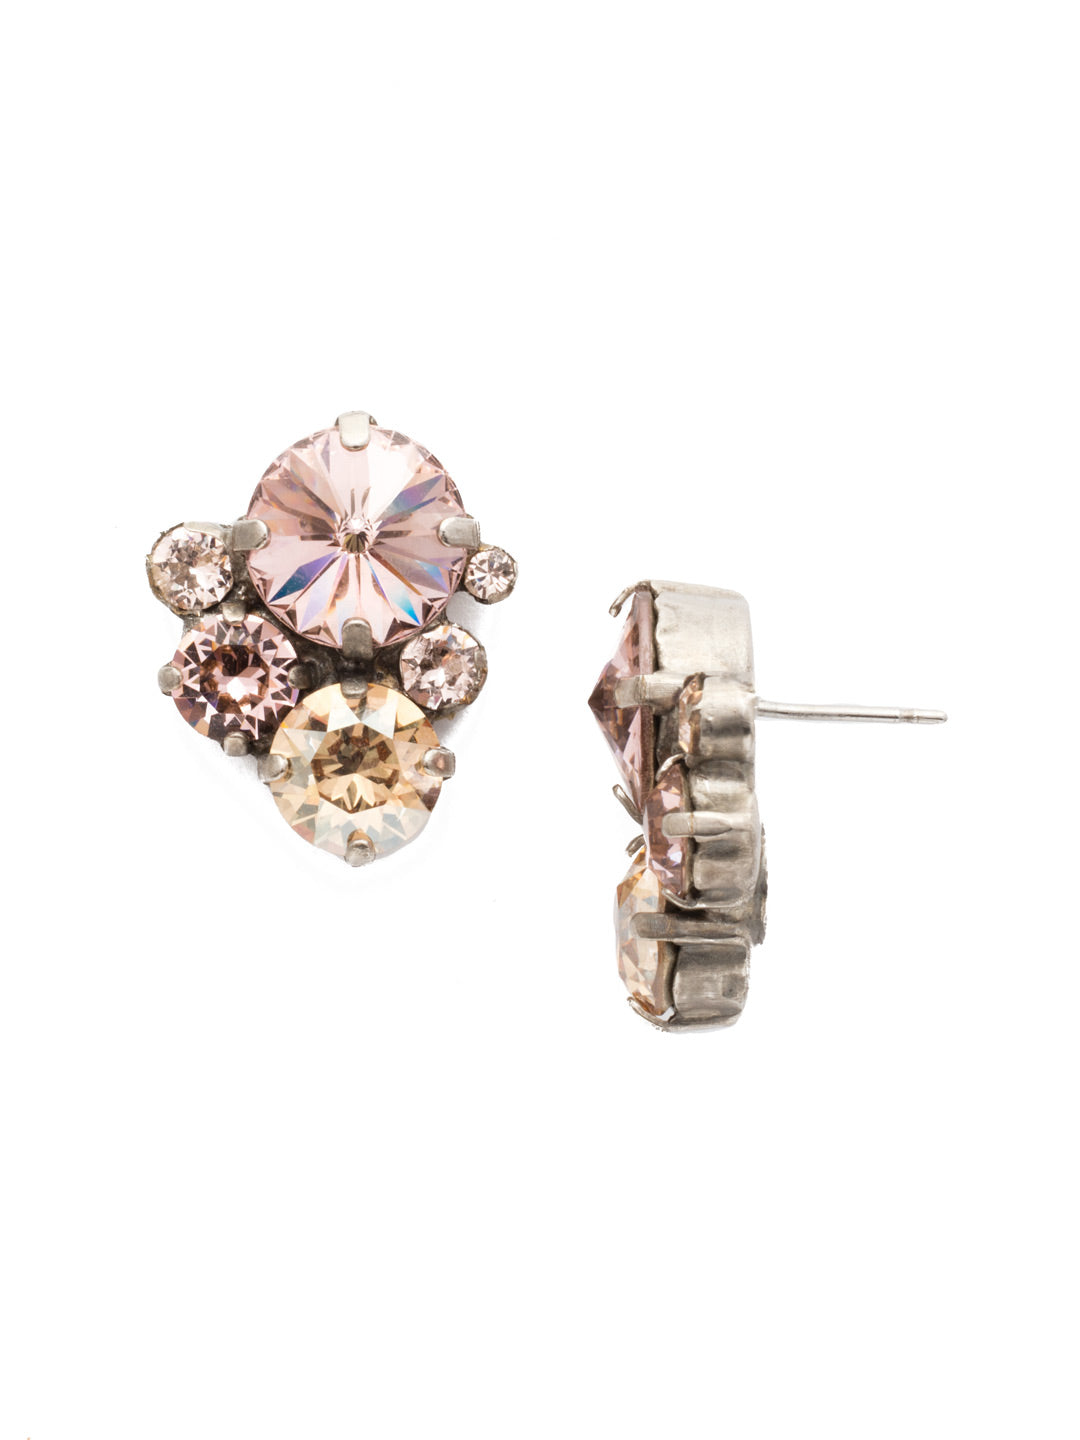 Crystal Assorted Rounds Stud Earrings - EDB11ASSBL